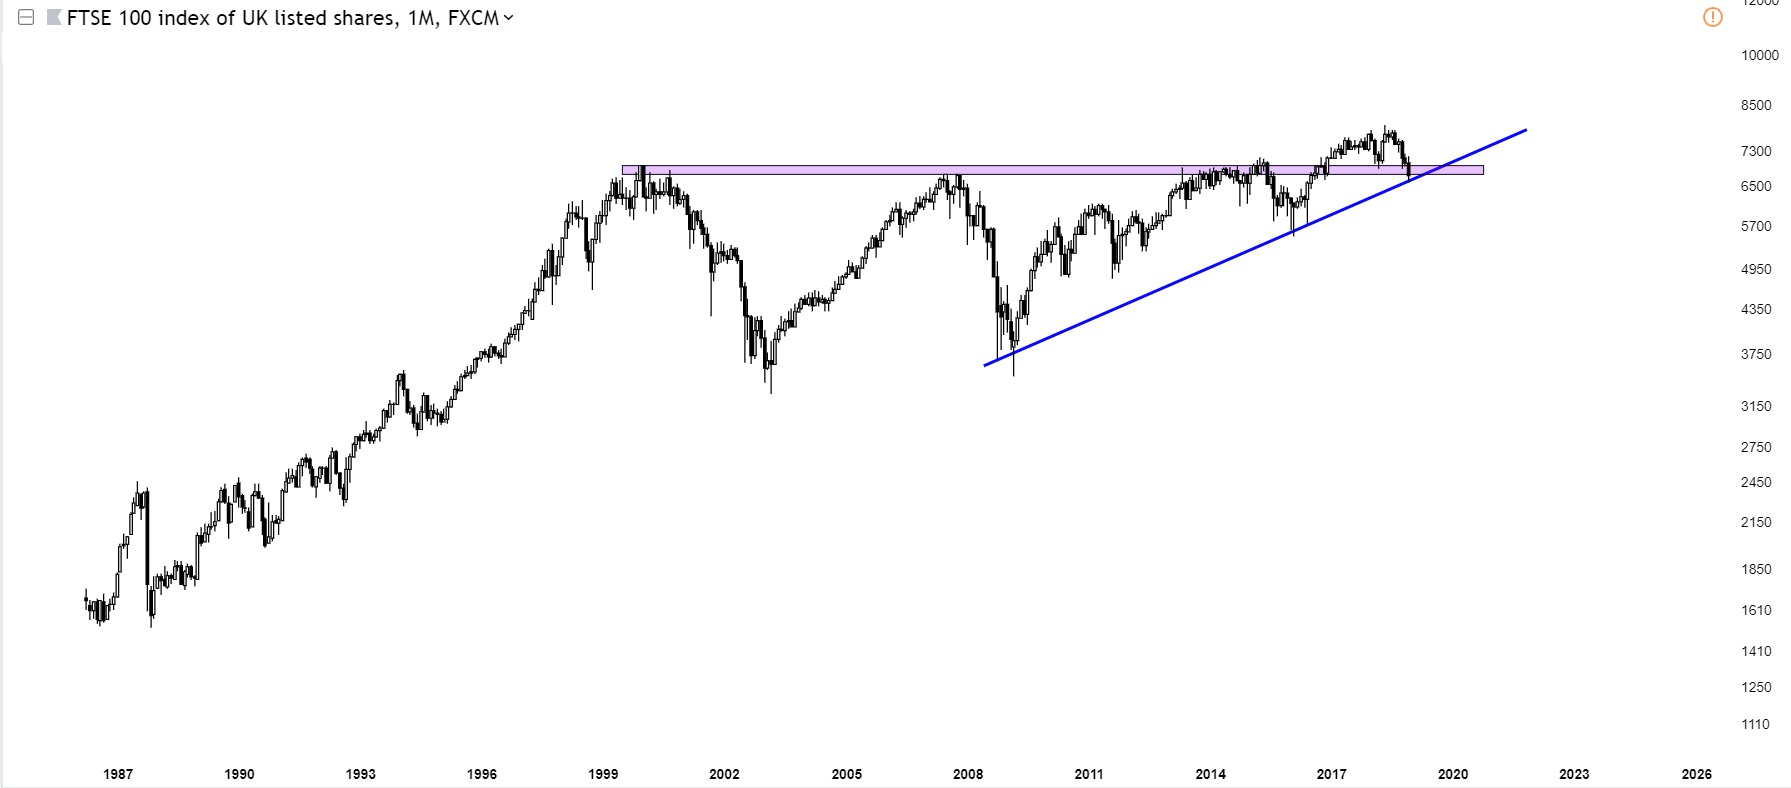 Charts Of International Stock Markets FTSE100